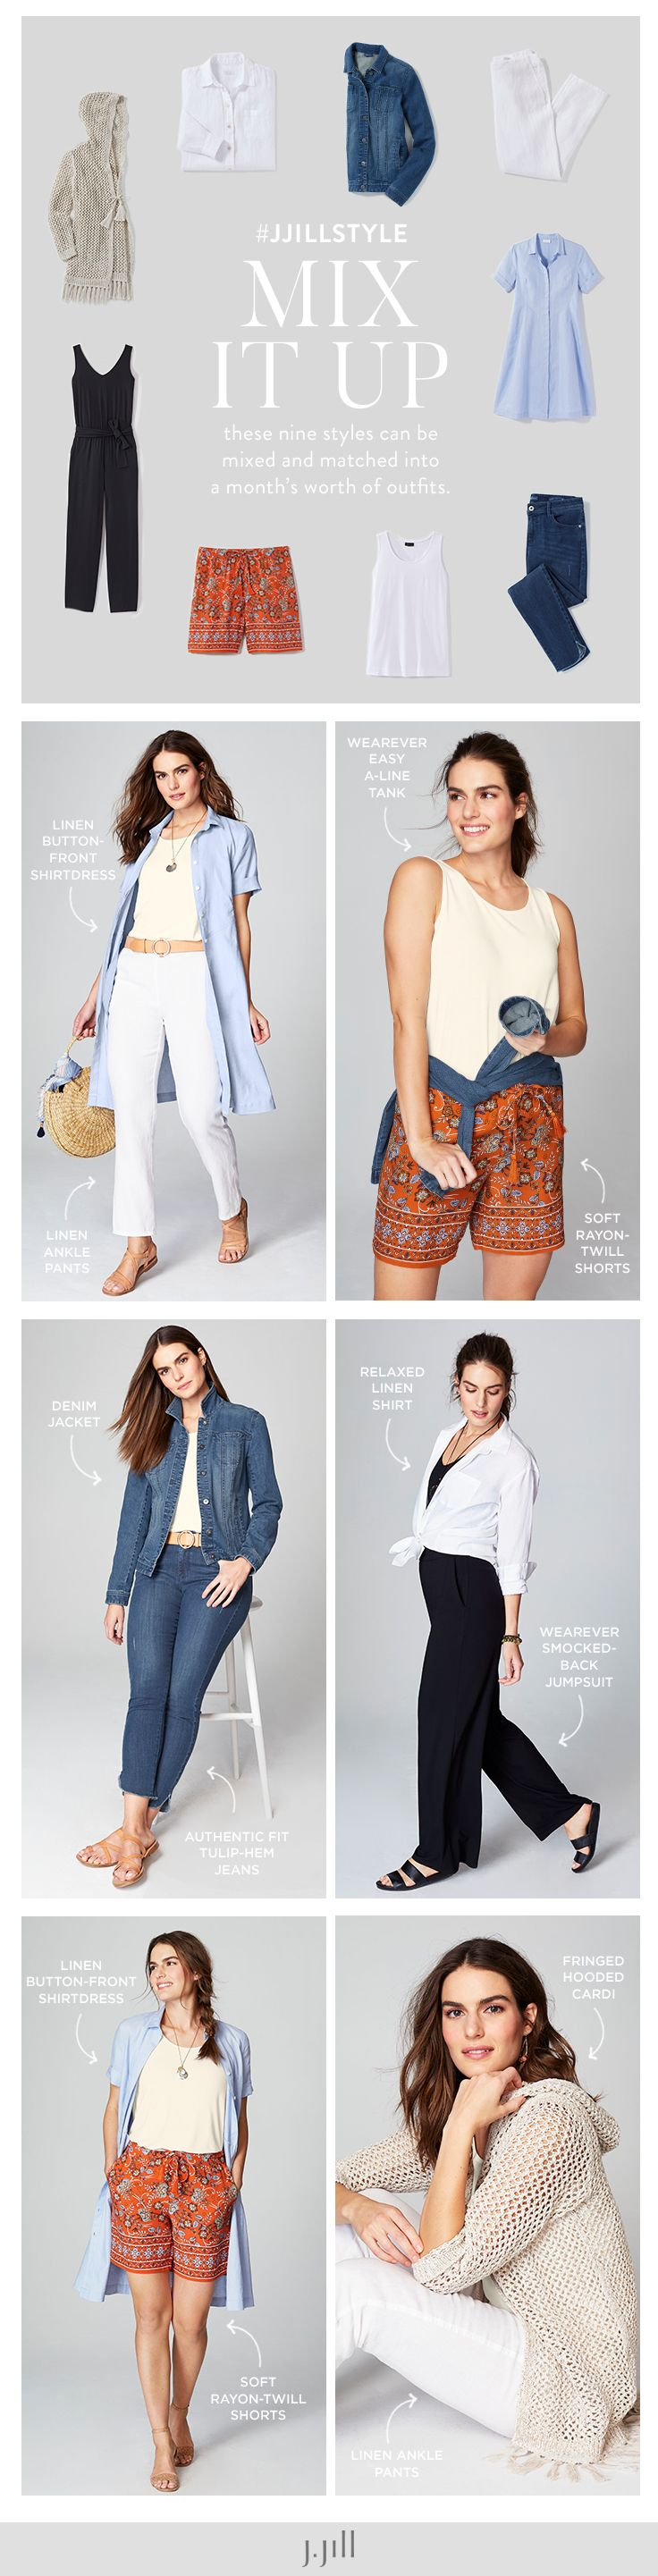 J Jill Mix It Up Mix And Match These 9 Styles For A Months Worth Of Outfits J Jill S Take On A Summer Capsule Summer Capsule Wardrobe Fashion Casual Outfits [ 2882 x 736 Pixel ]